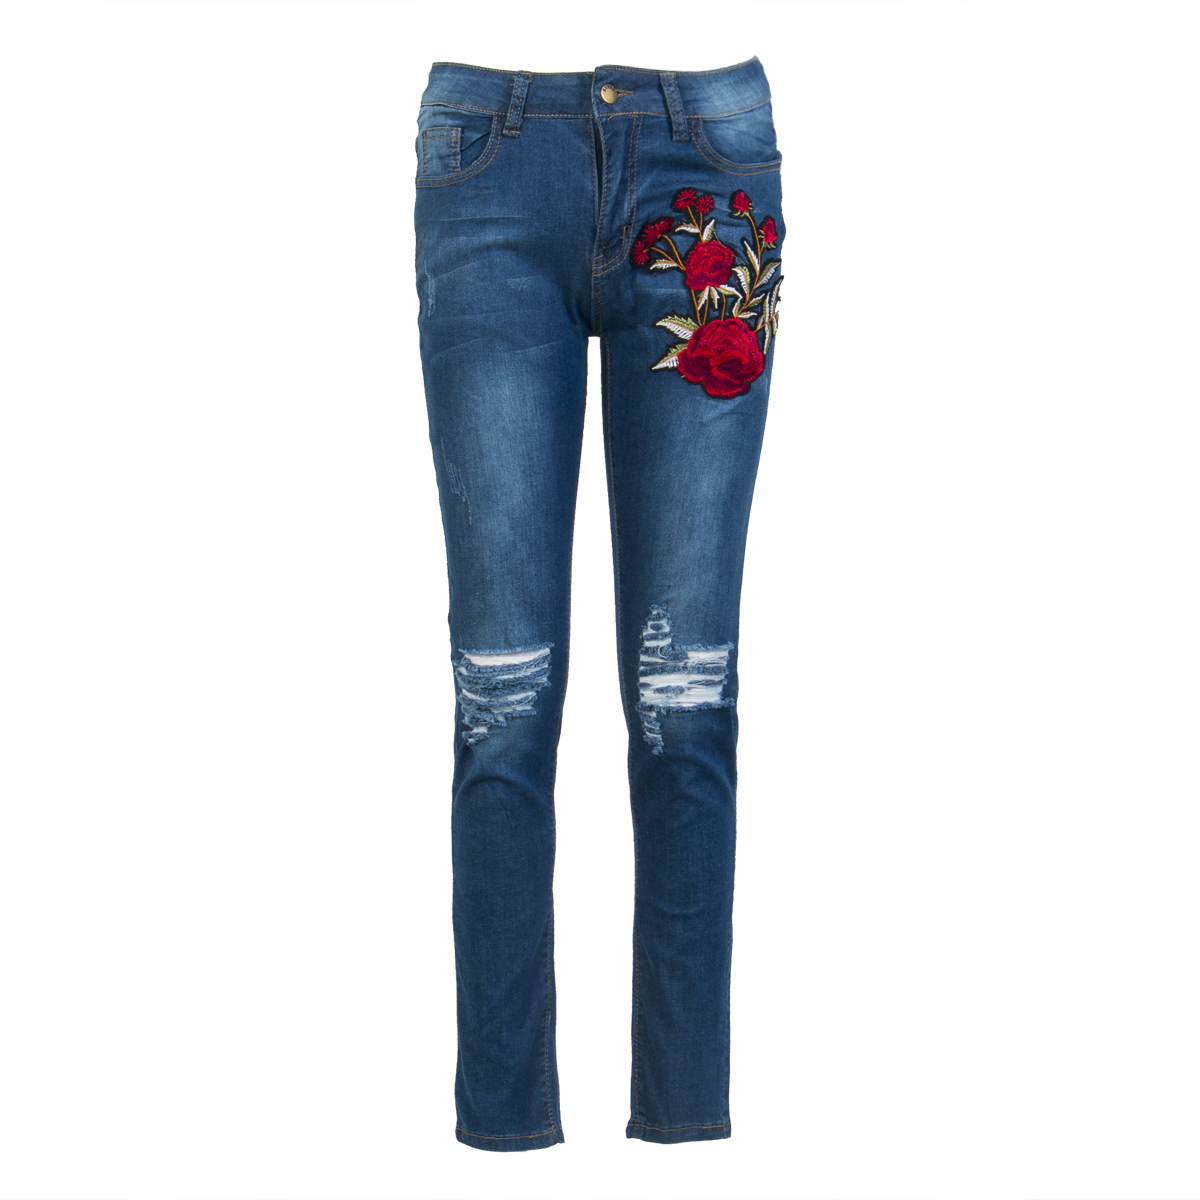 Plus Size Women Denim Skinny Pants High Waist Hole Stretch Trousers Slim Pencil Jeans Stylish Floral Embroidery Pencil Jeans rosicil new women jeans low waist stretch ankle length slim pencil pants fashion female jeans plus size jeans femme 2017 tsl049 page 8